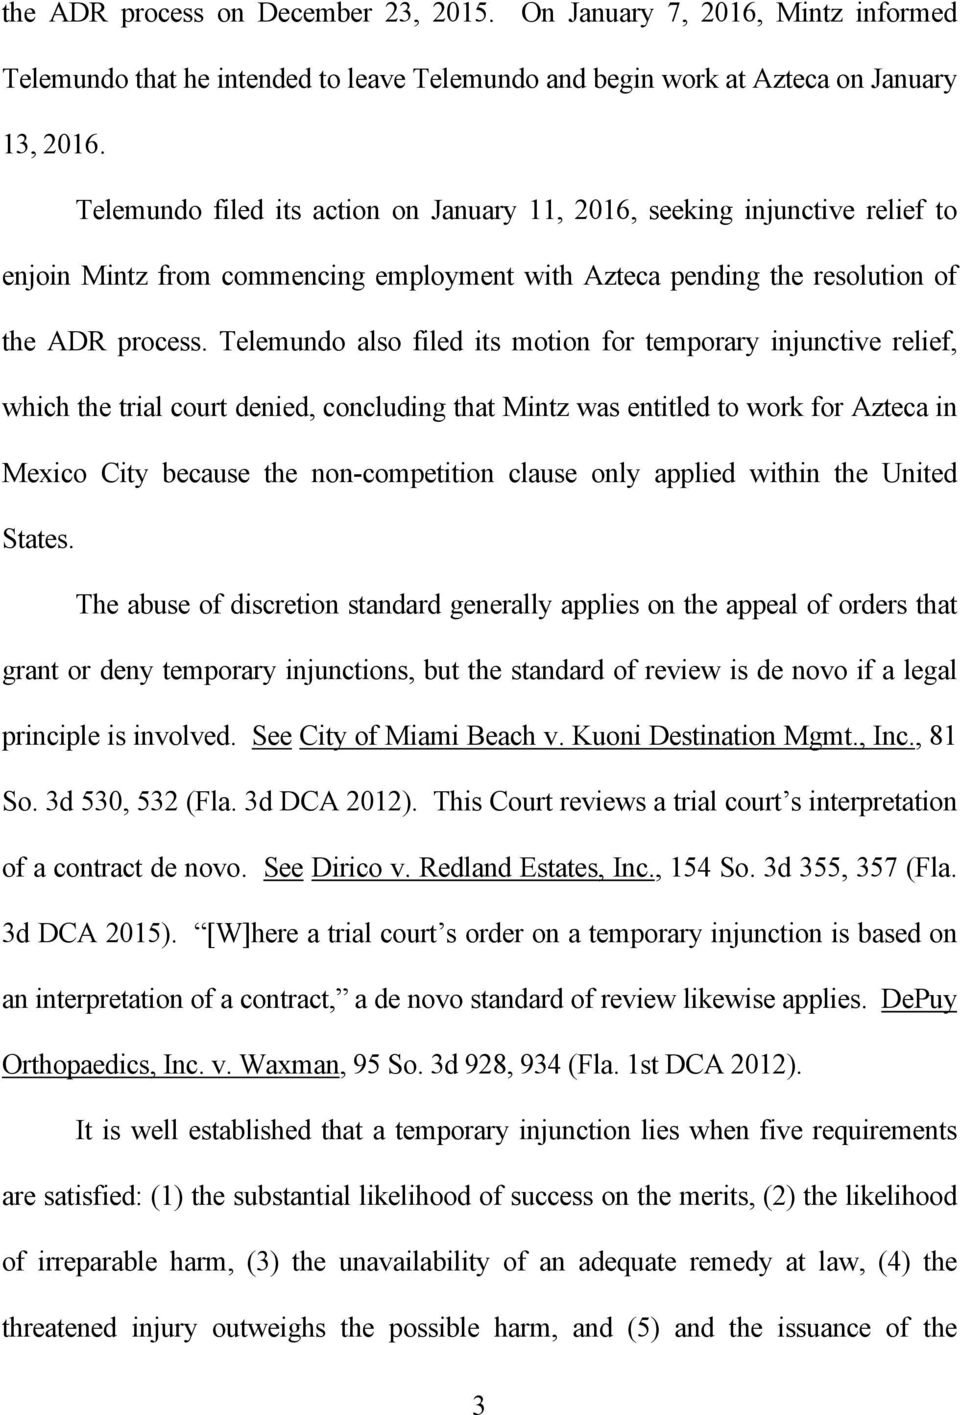 Telemundo also filed its motion for temporary injunctive relief, which the trial court denied, concluding that Mintz was entitled to work for Azteca in Mexico City because the non-competition clause